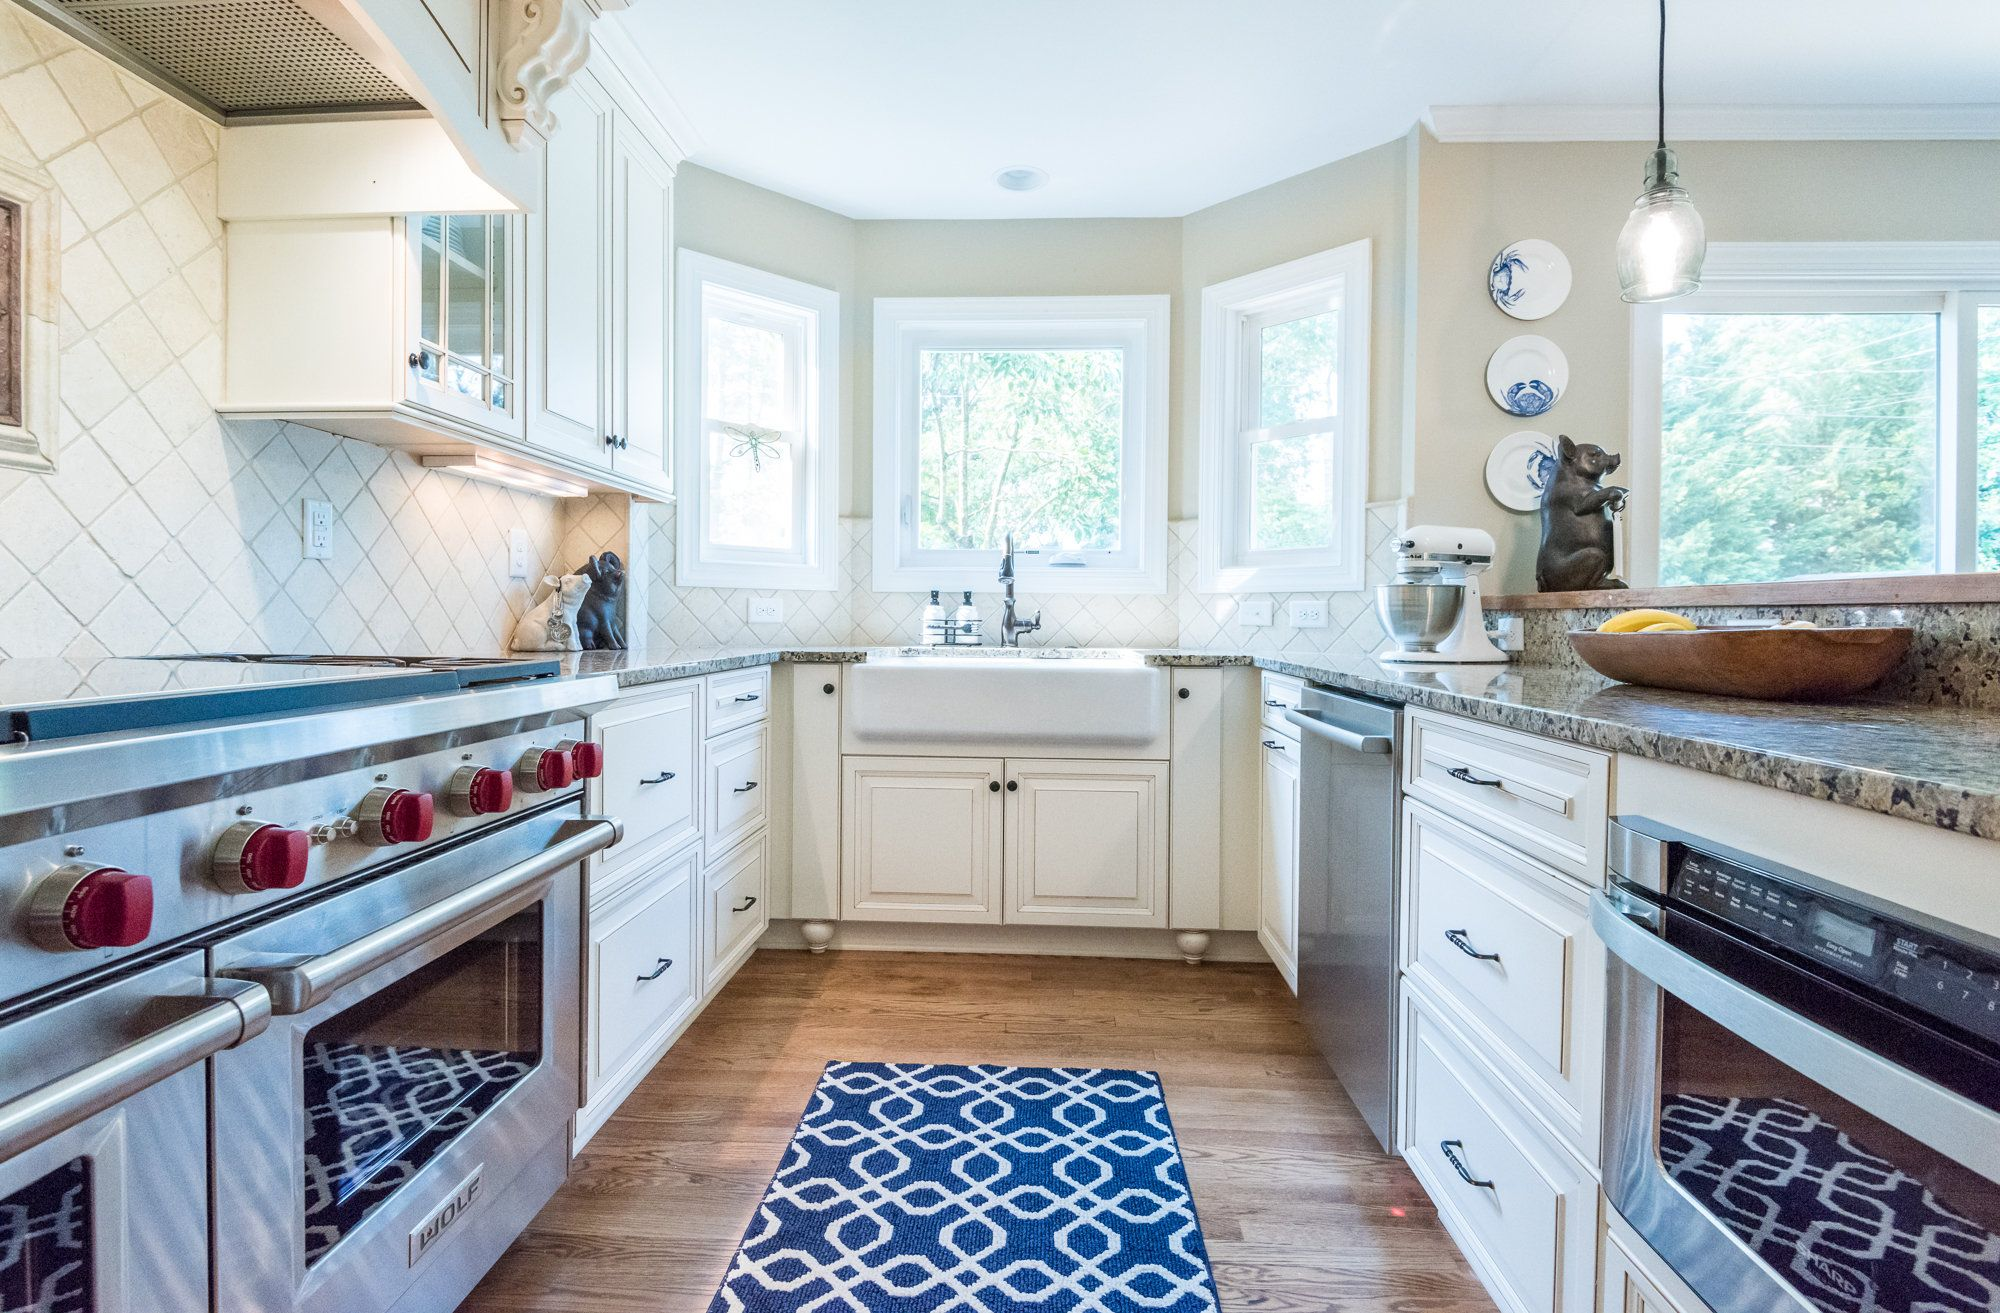 This Kitchen Features White Cabinets With A Mocha Glaze